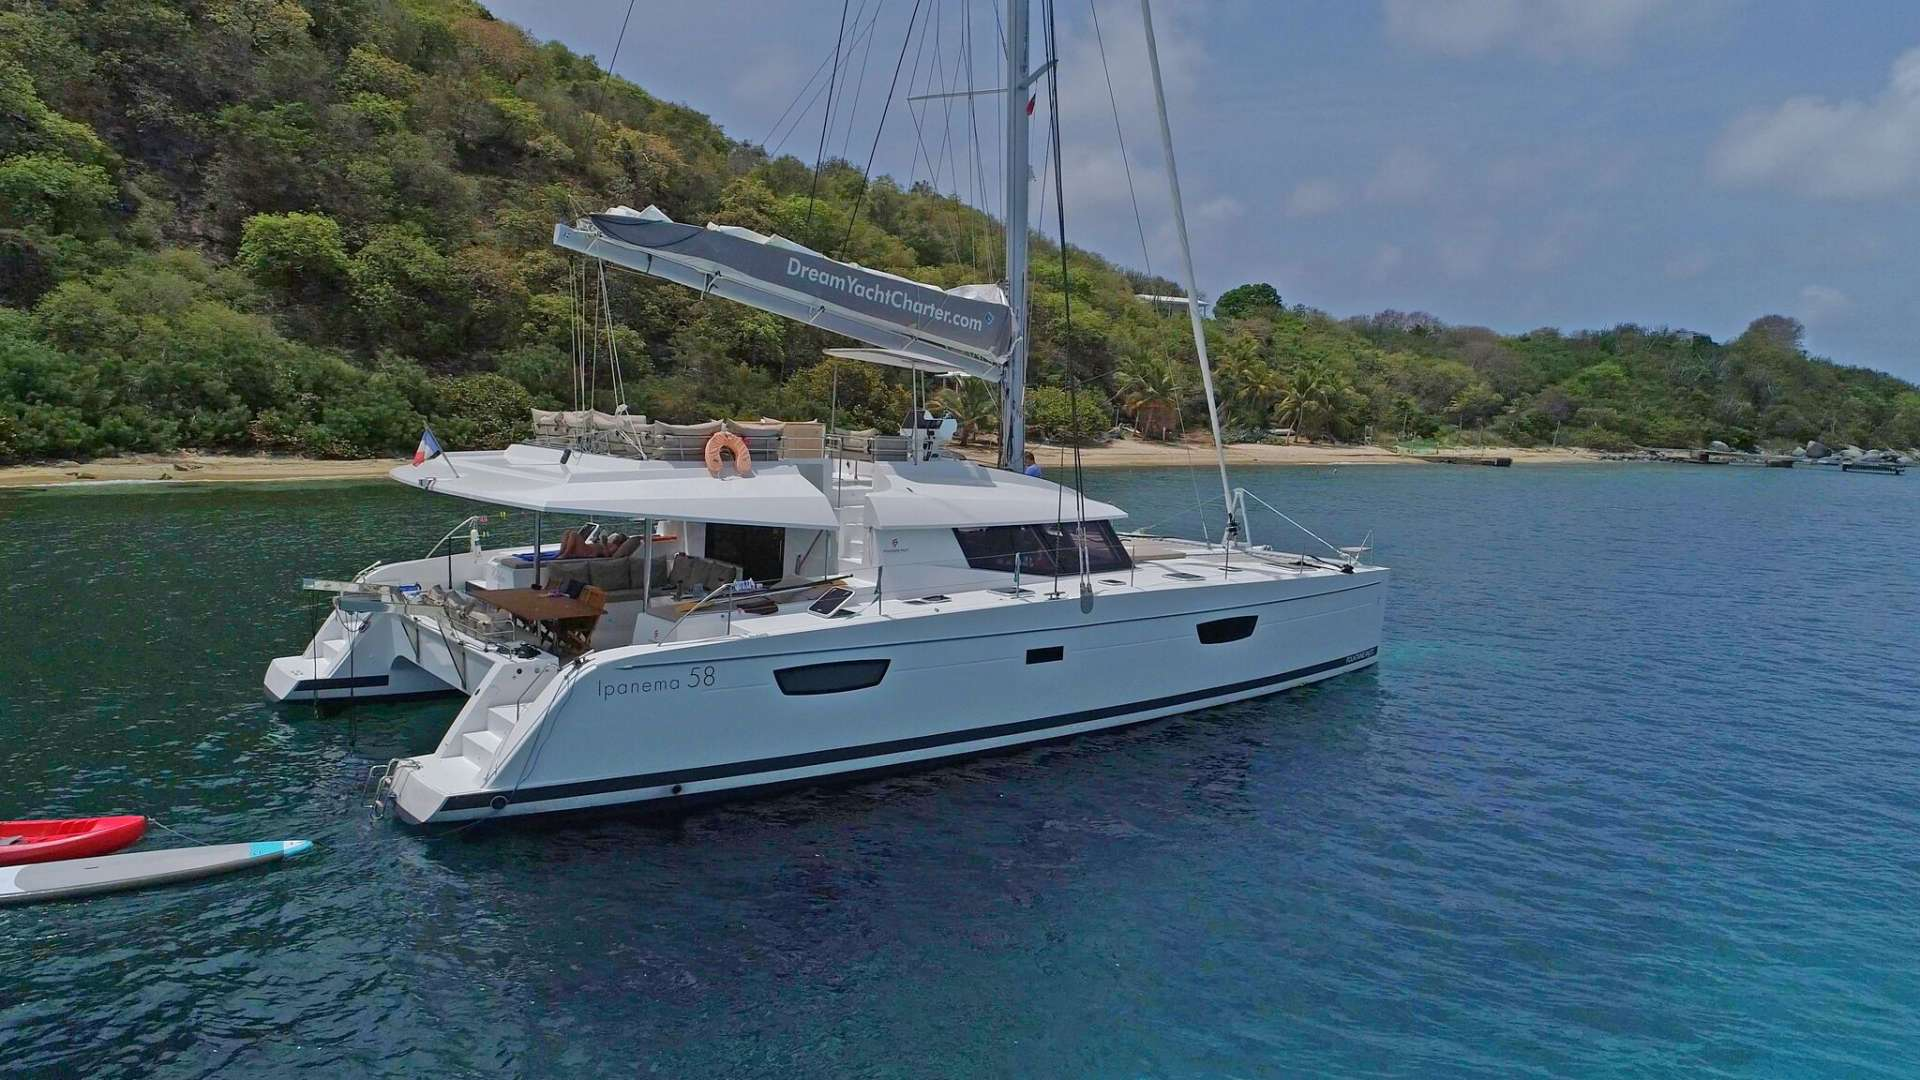 Image of Dream Canouan yacht #5